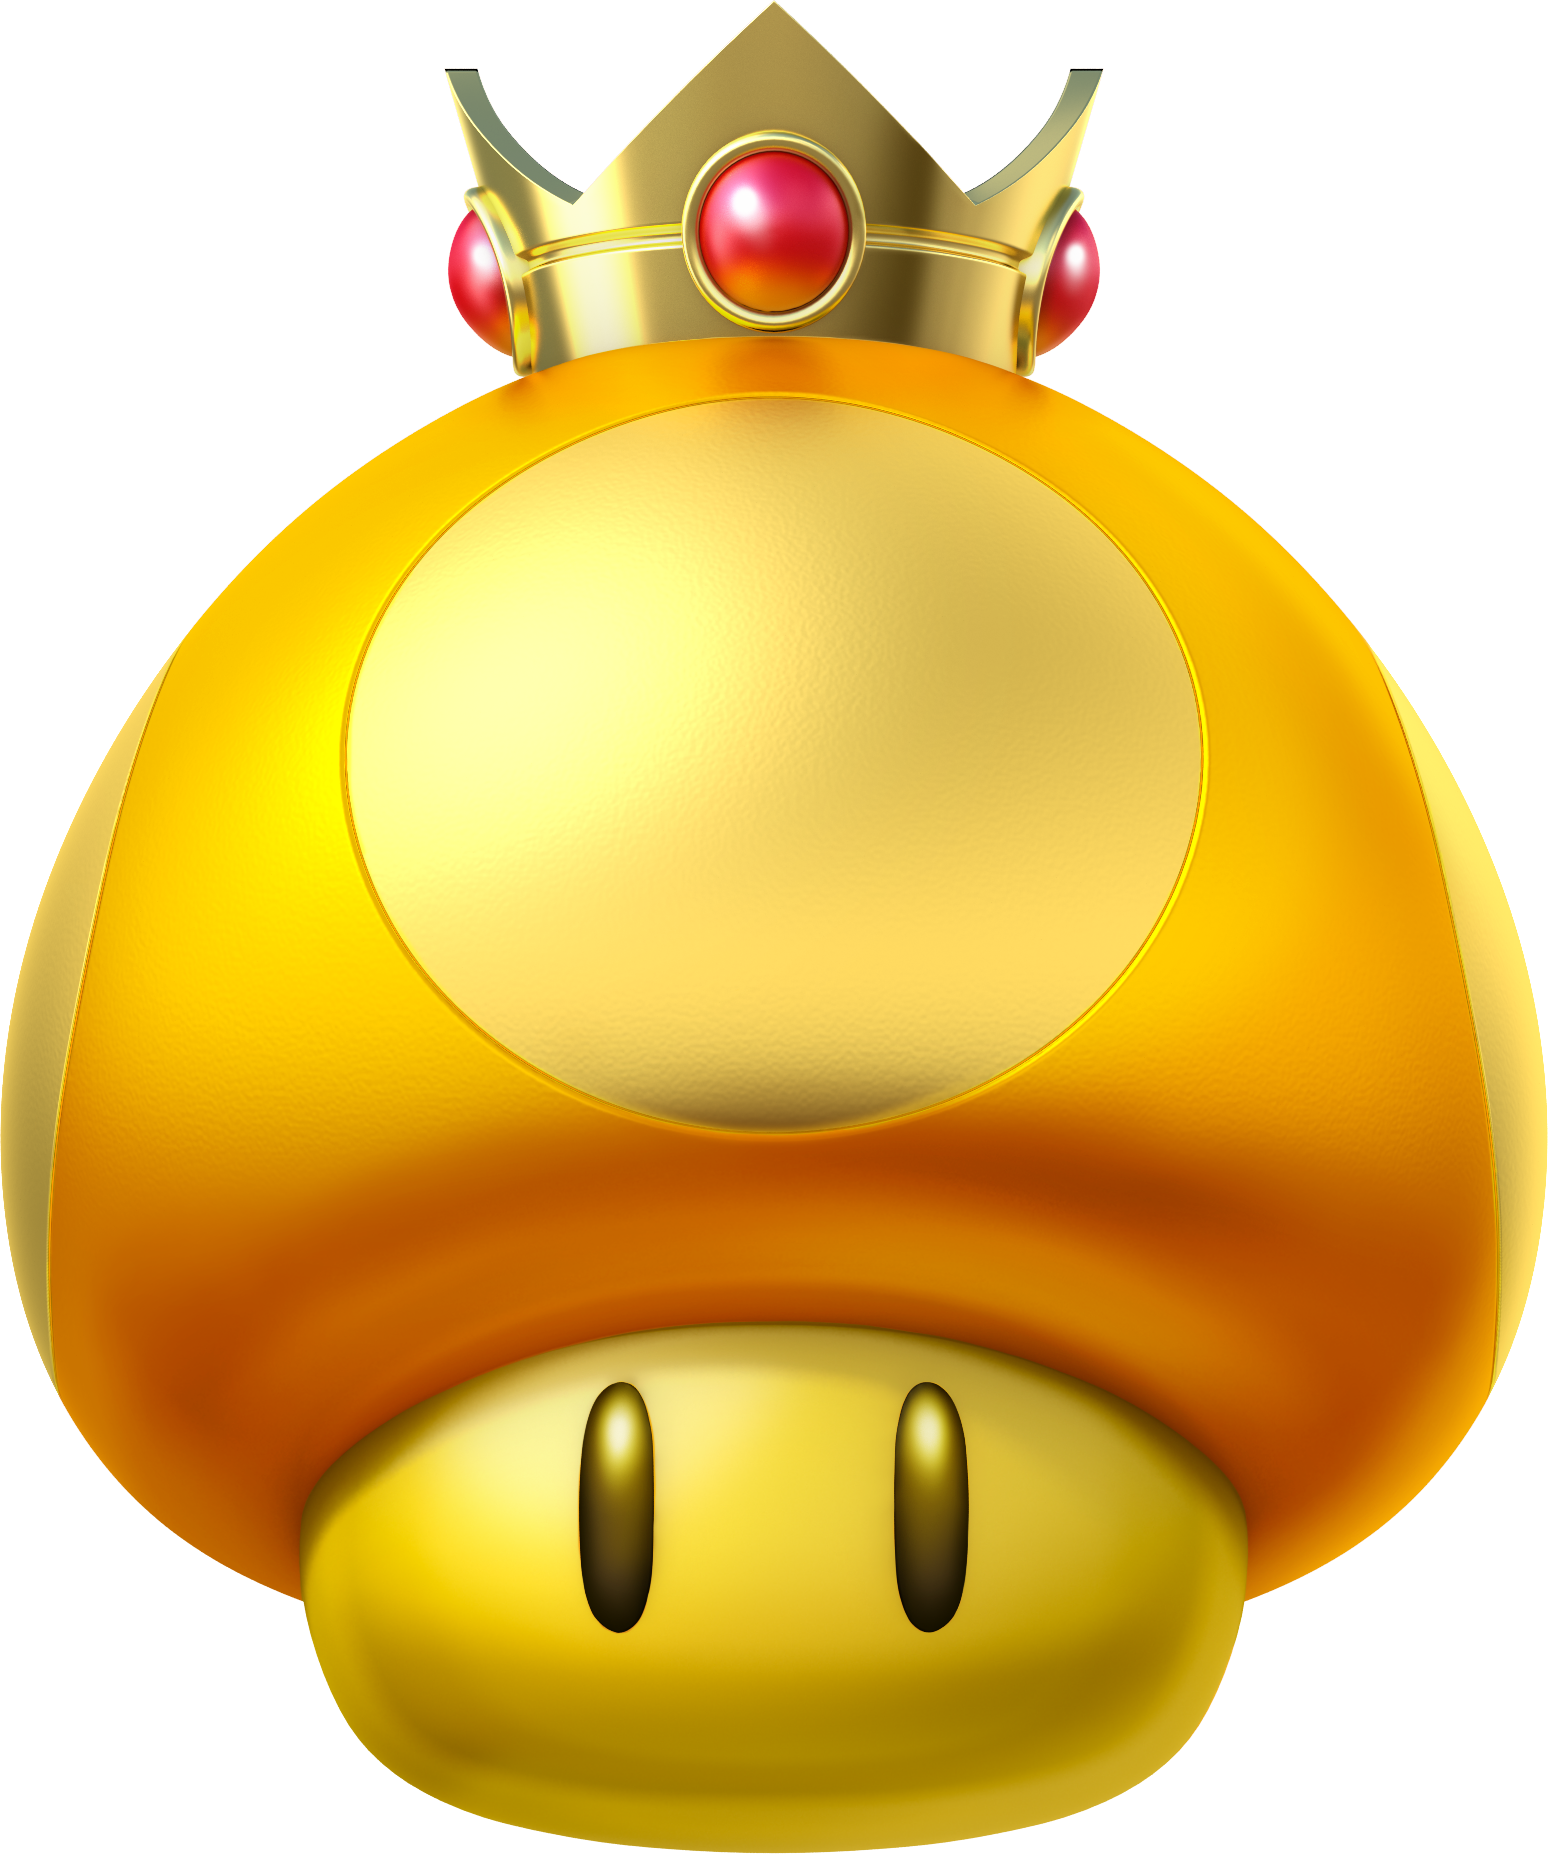 Mario kart gallery pinterest. Mushrooms clipart trivia